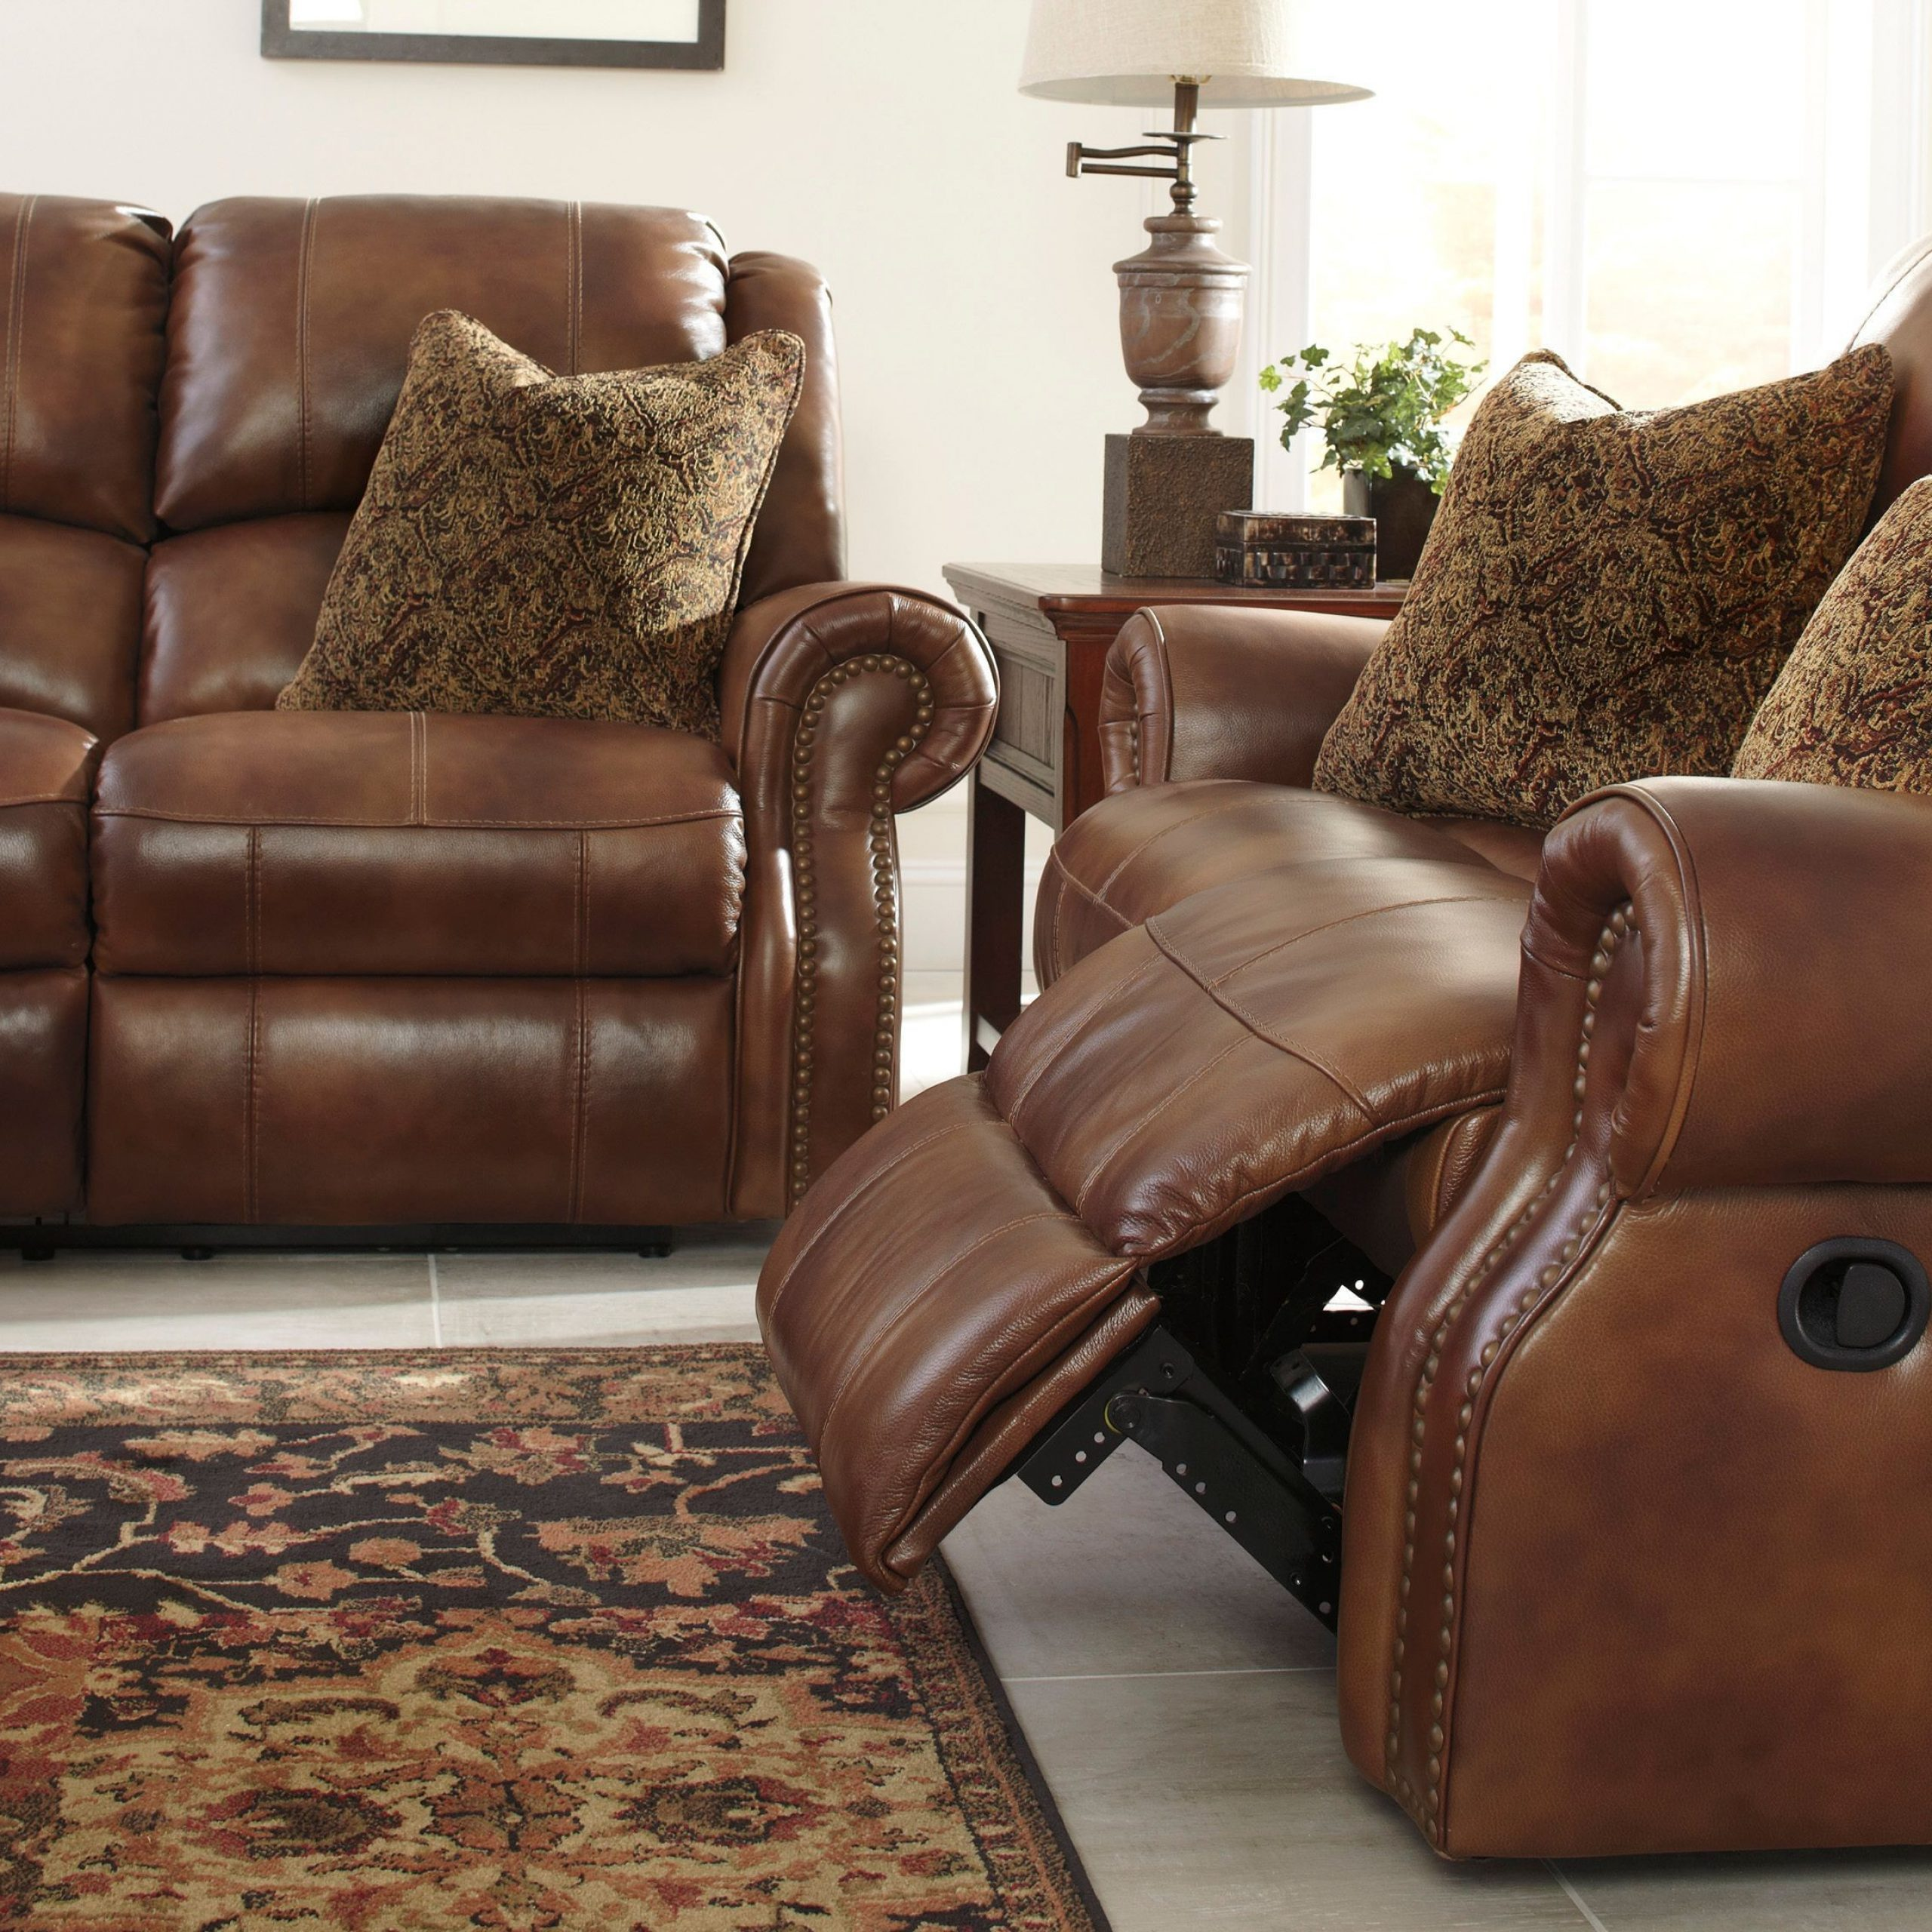 Walworth Auburn Power Reclining Sofa From Ashley (u7800187 Intended For Widely Used Power Reclining Sofas (View 7 of 20)